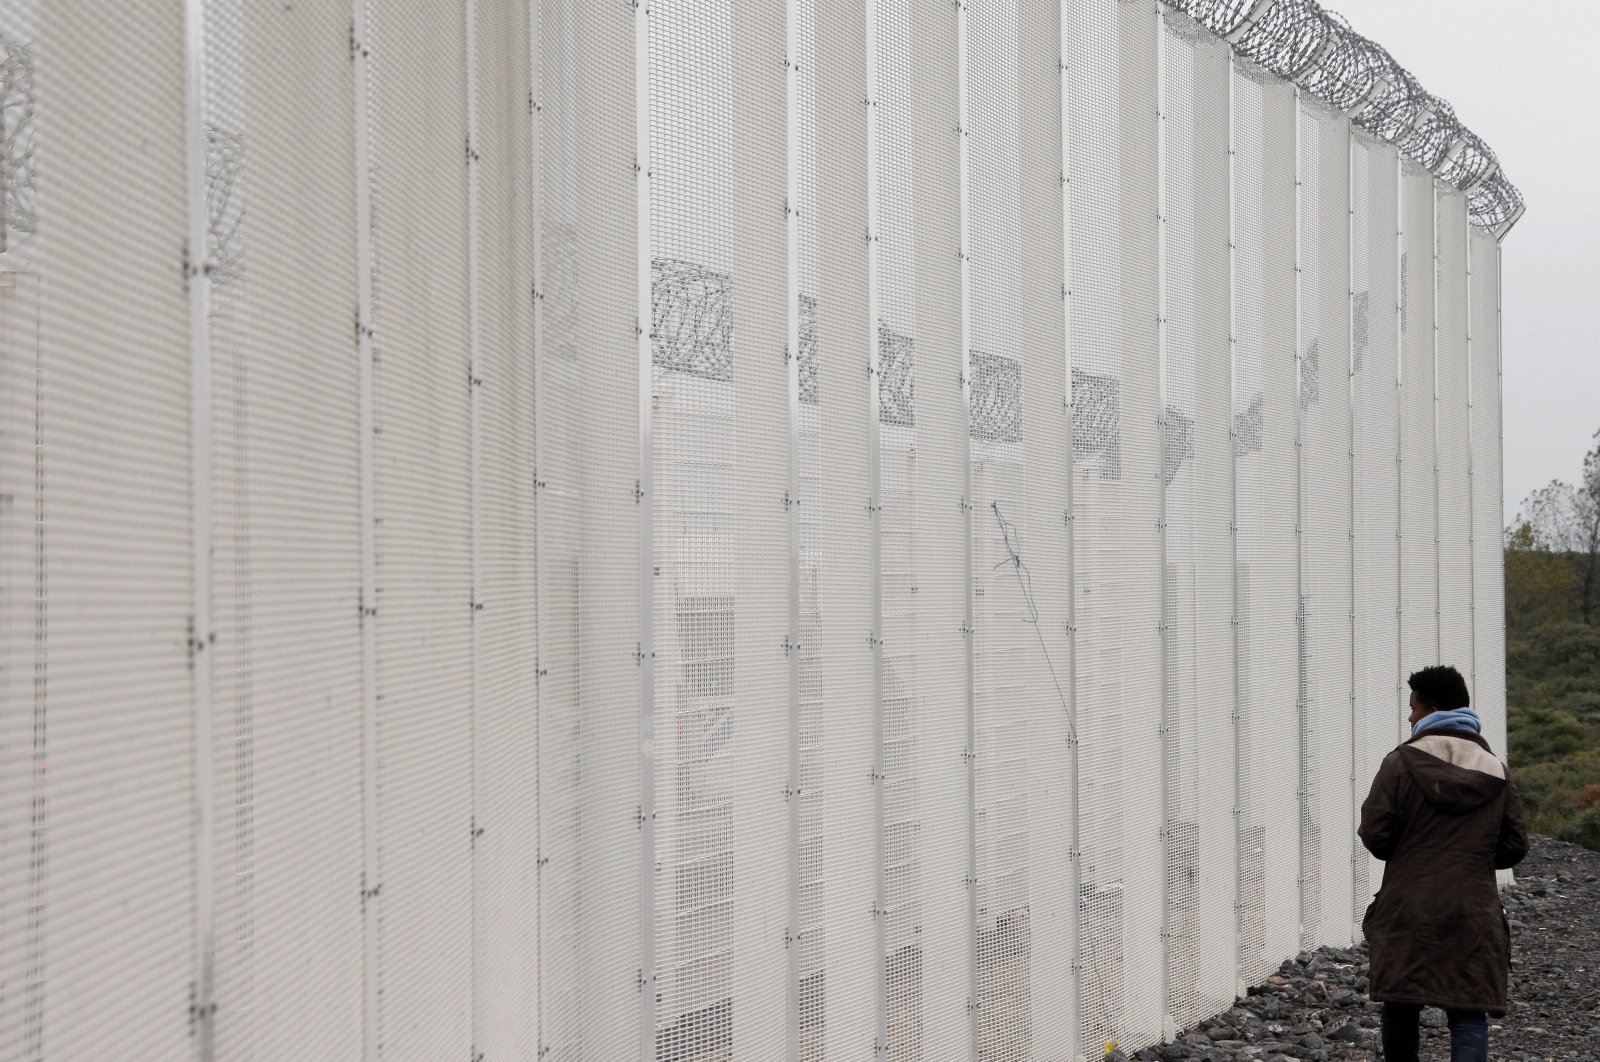 A migrant stands near a fence installed to secure the Eurotunnel platform area near the migrant camp known as the new Jungle in Calais, northern France, Oct. 21, 2015. (AP Photo)